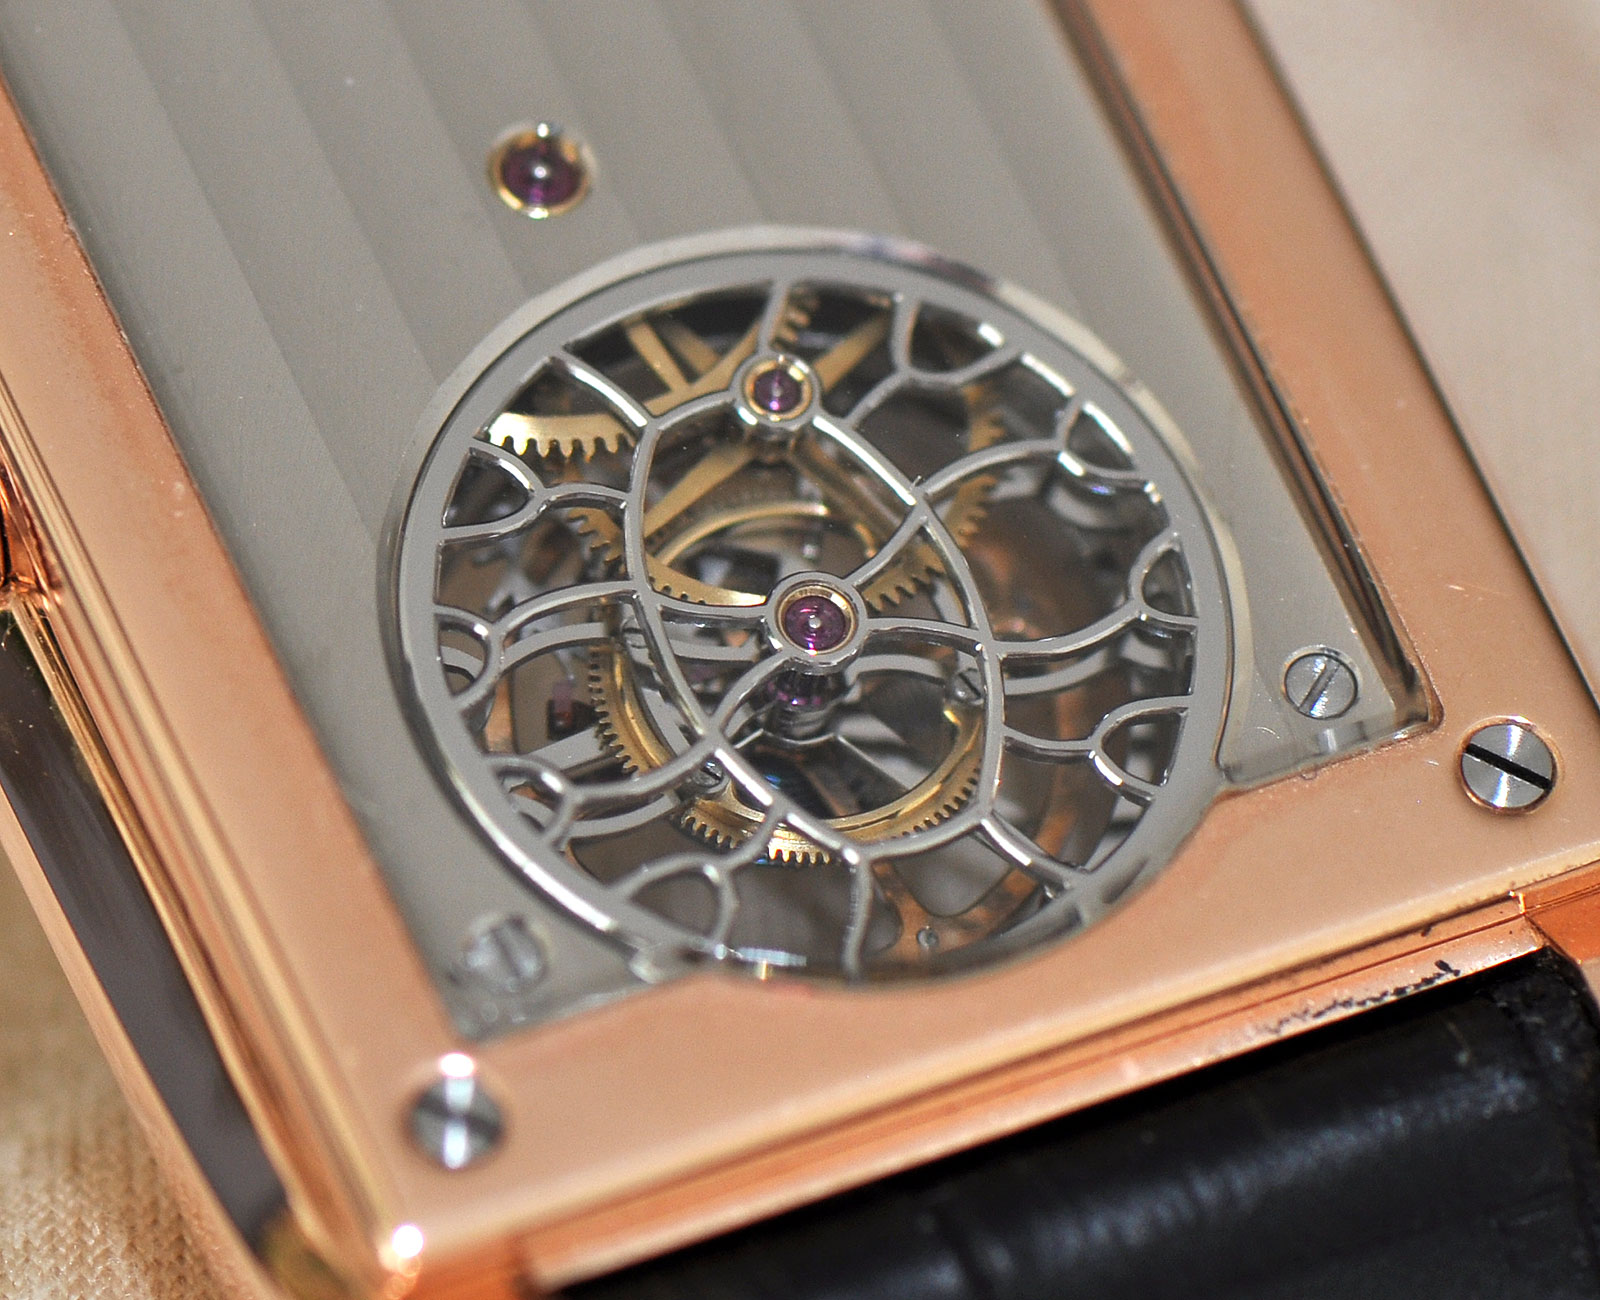 Kaj Korpela Tourbillon Watch 2